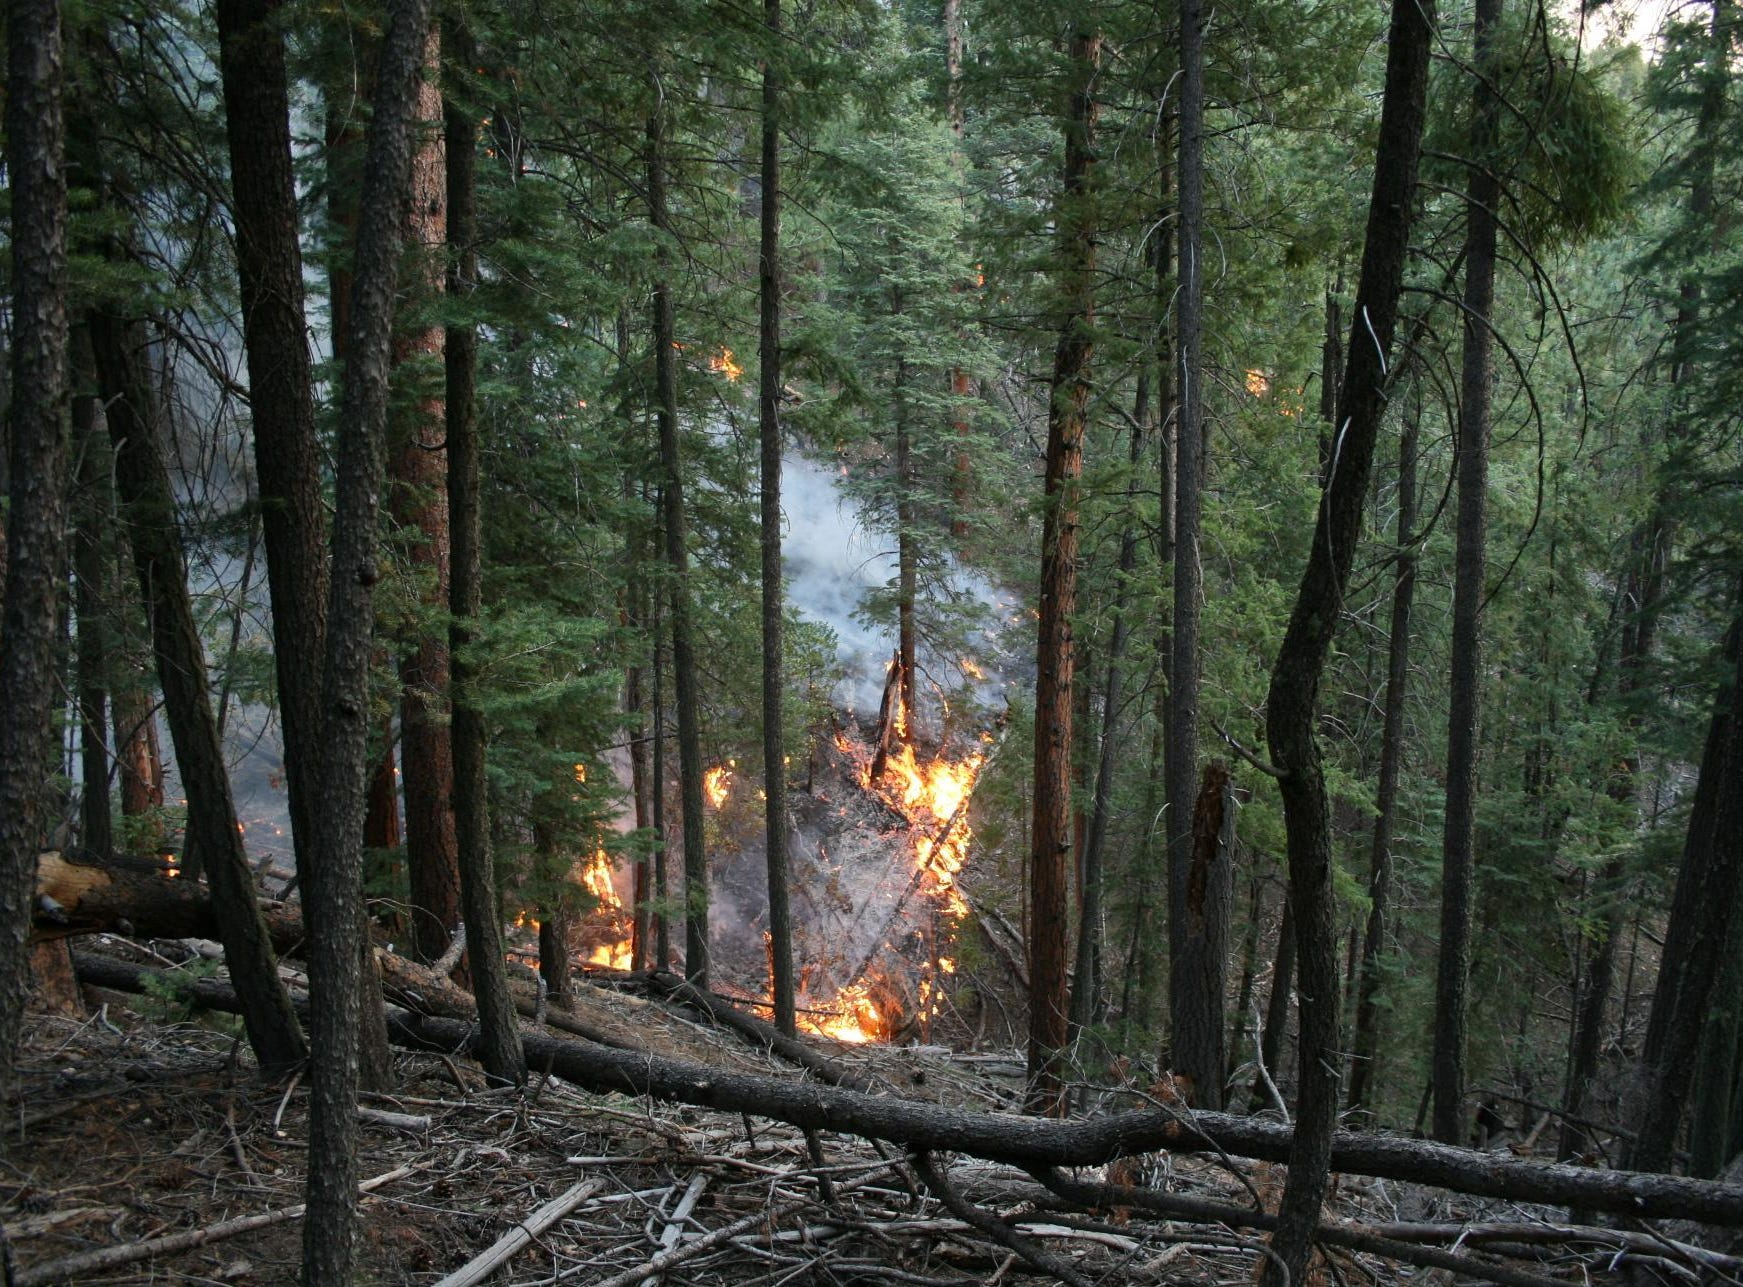 The Platypus Fire burns among trees and down logs.